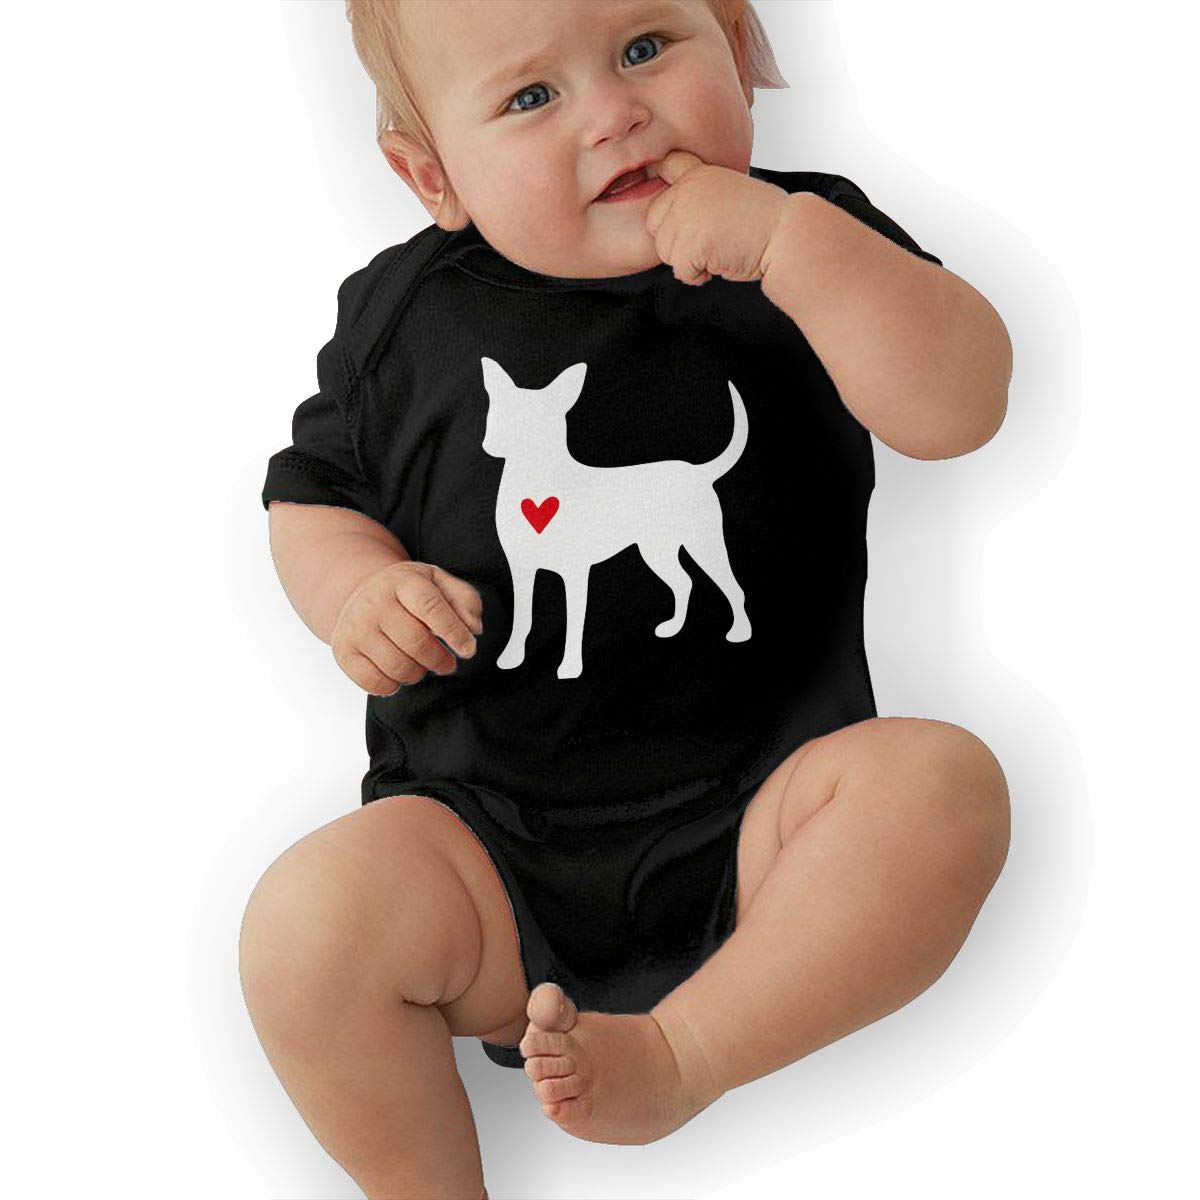 Mri-le2 Toddler Baby Boy Girl Short Sleeve Jumper Bodysuit Chihuahua Dog Heart-1 Toddler Clothes